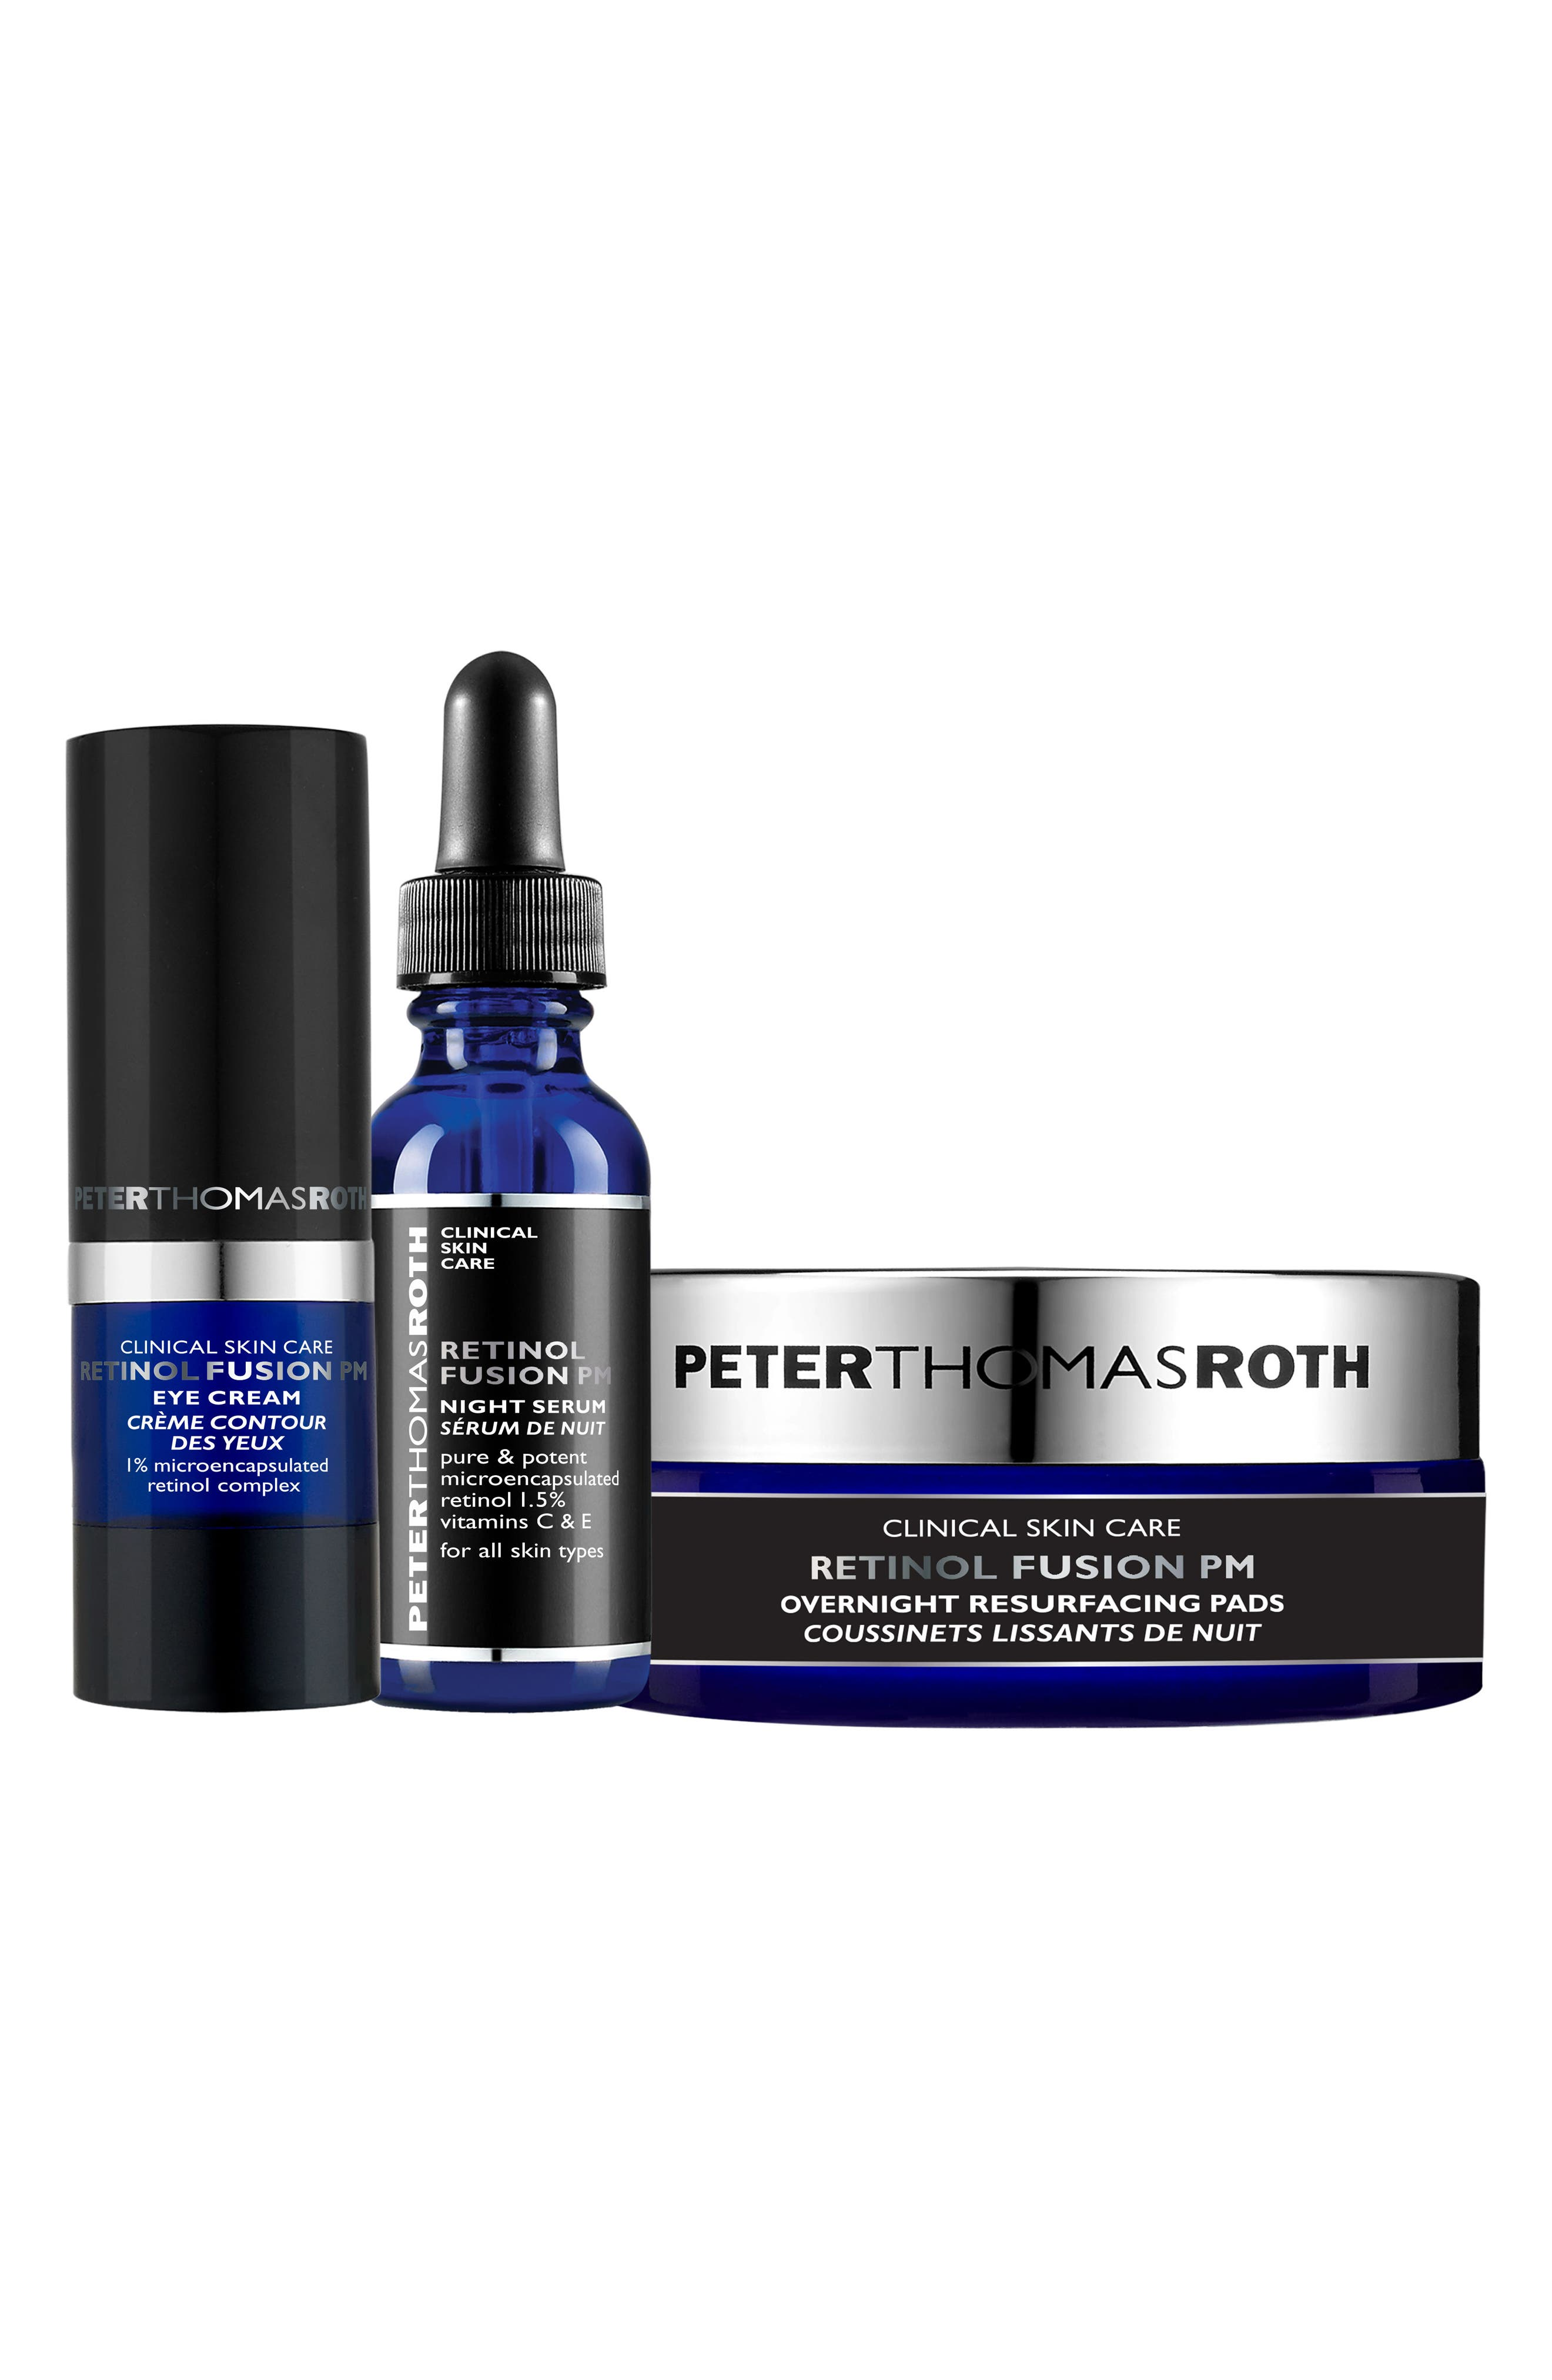 Peter Thomas Roth Retinol Fusion PM Power Trio ($112 Value)